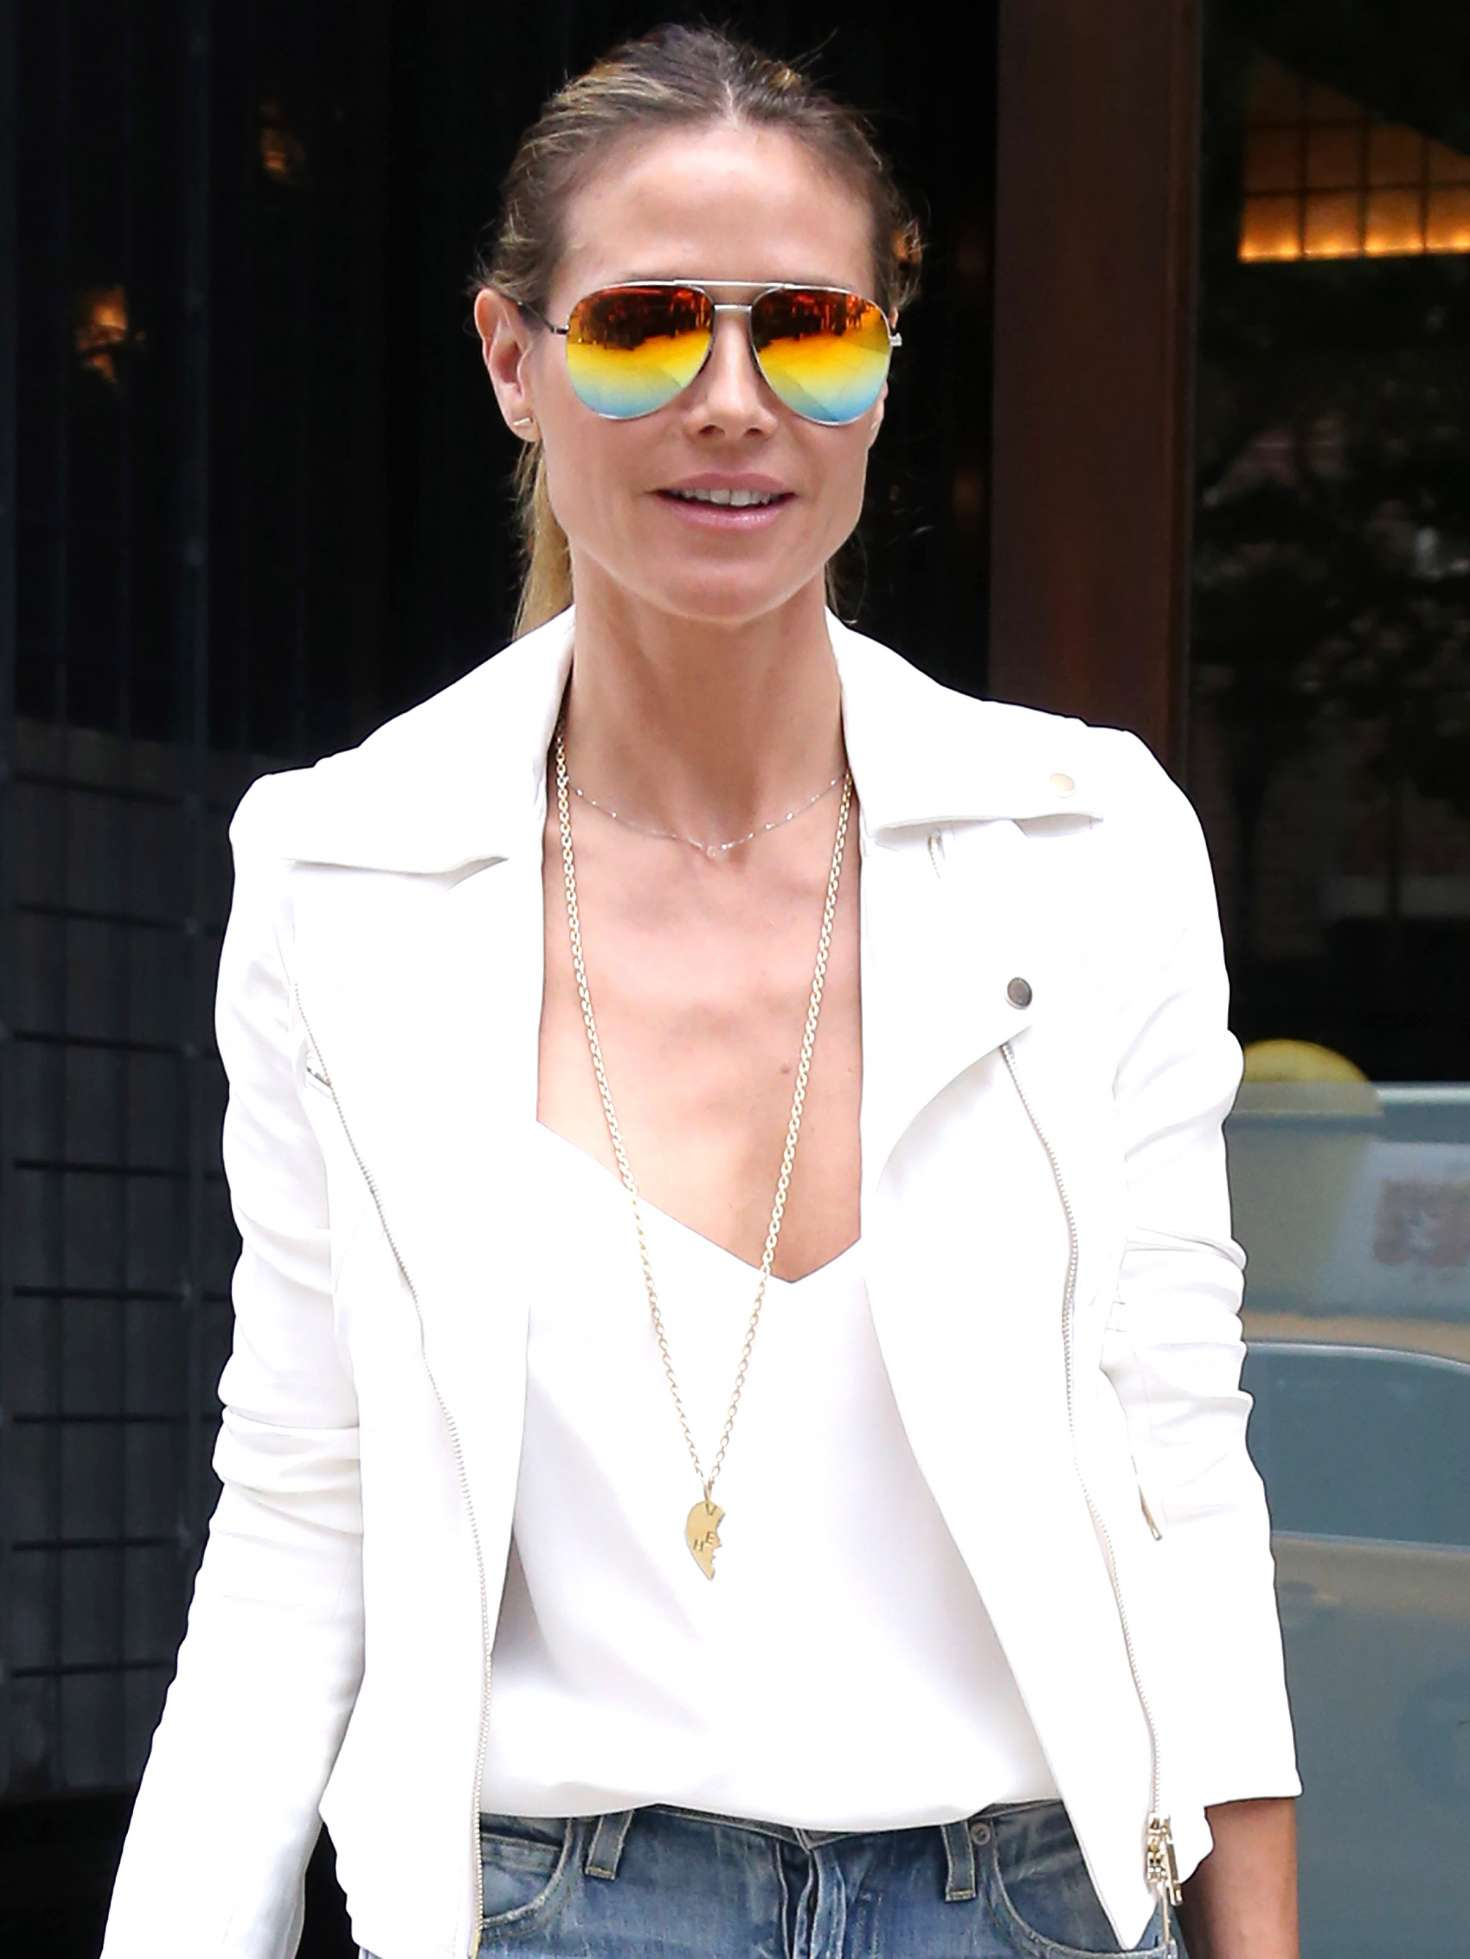 Heidi Klum 2017 : Heidi Klum Out and about in NY -01